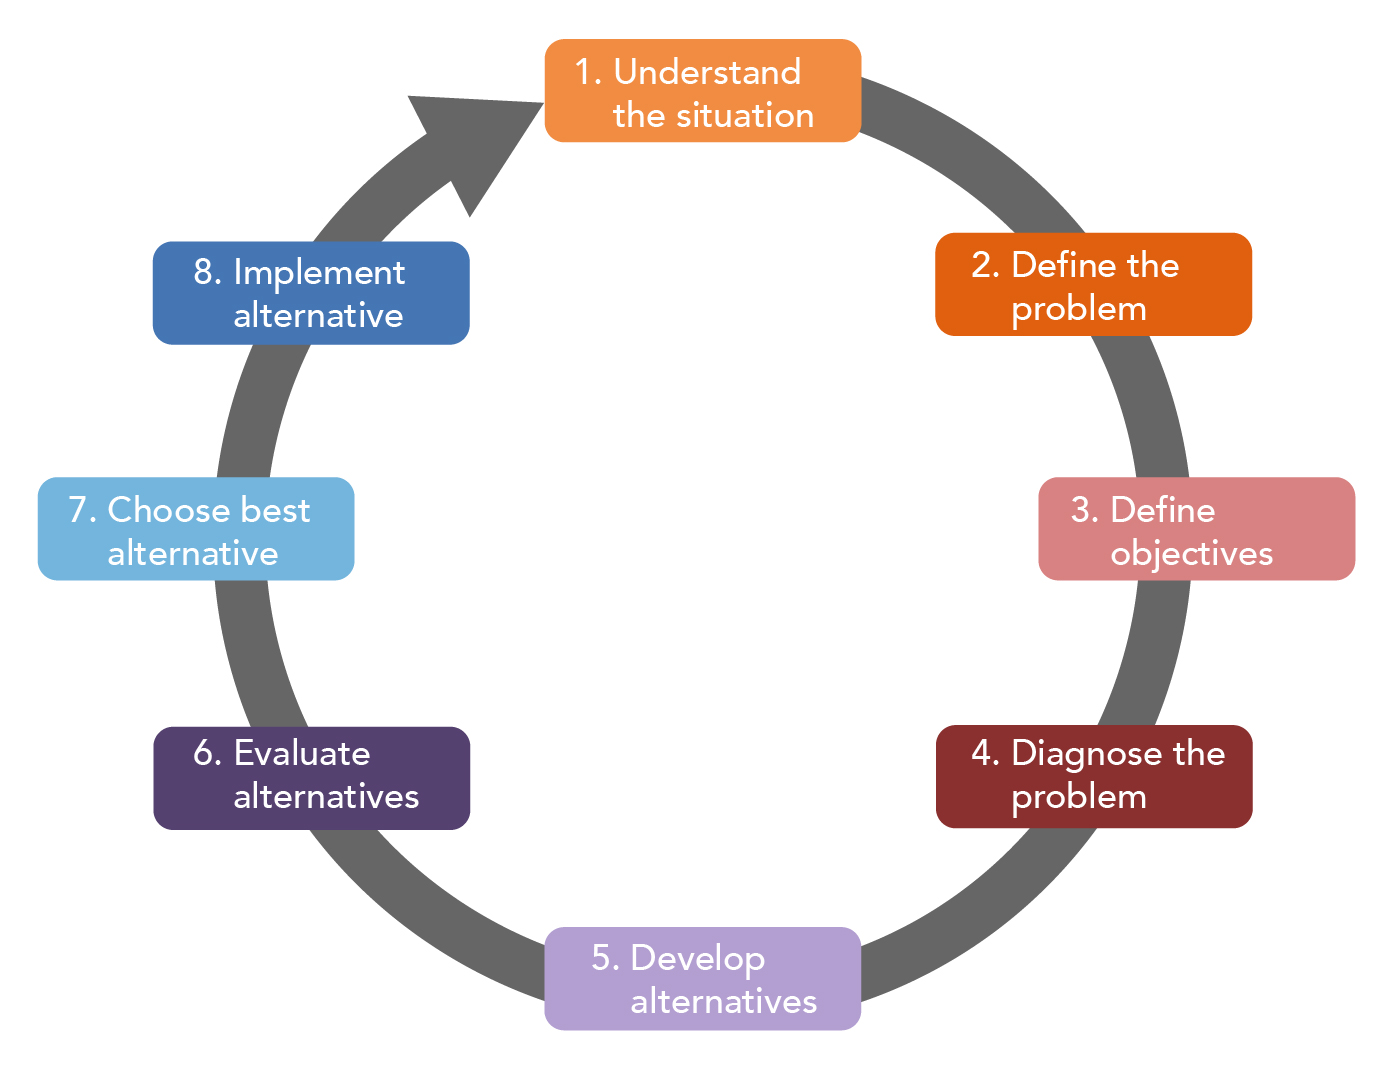 A cycle showing the eight steps in the rational decision making process: 1) Understand the situation. 2) Define problem. 3) Define objectives. 4) Diagnose problem. 5) Develop alternatives. 6) Evaluate alternatives. 7) Choose best alternative. 8) Implement alternative.